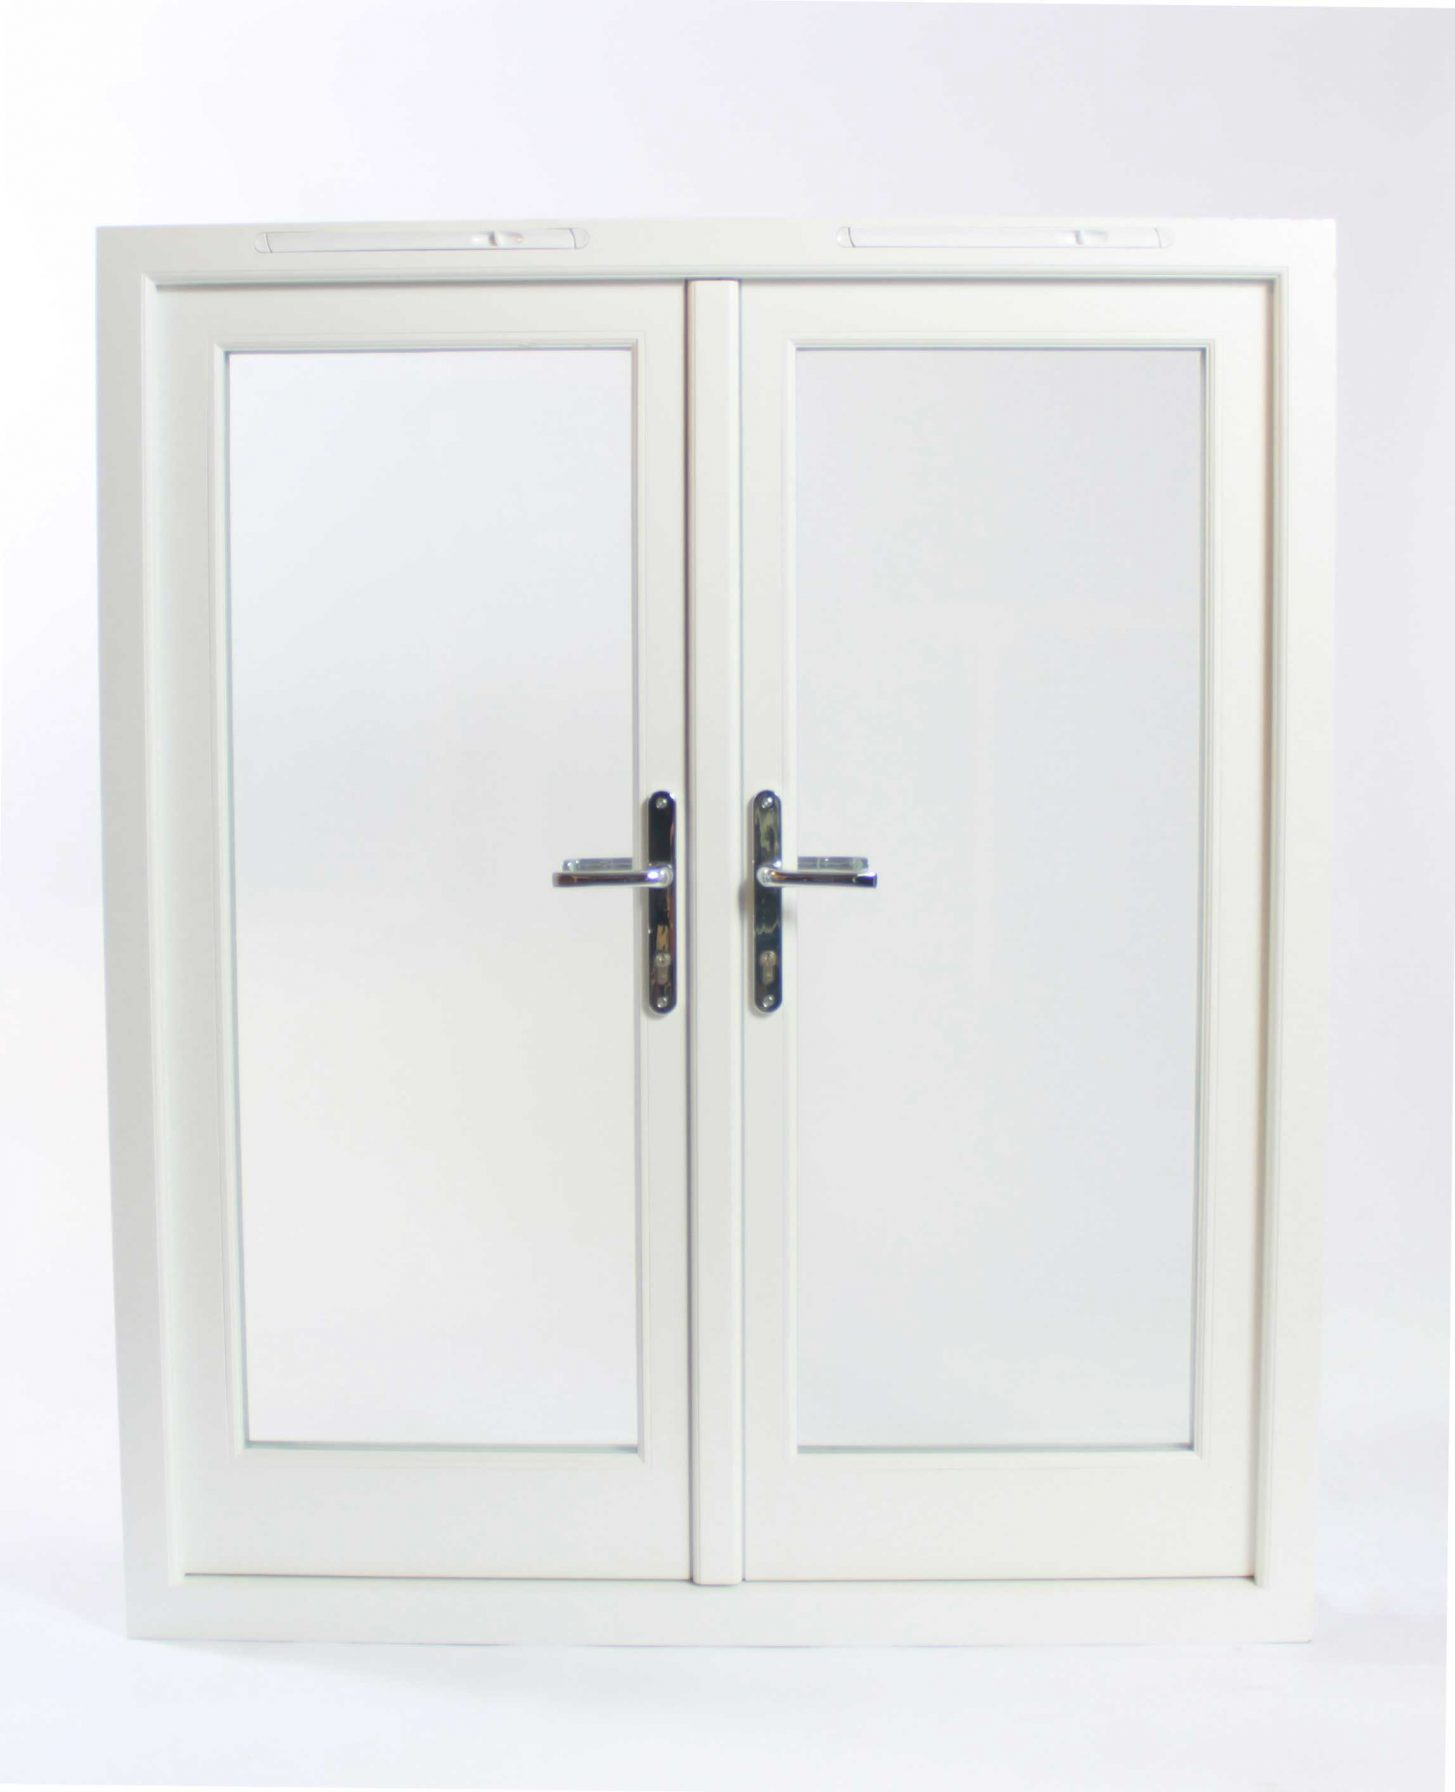 Gallery Image: Double opening casement window